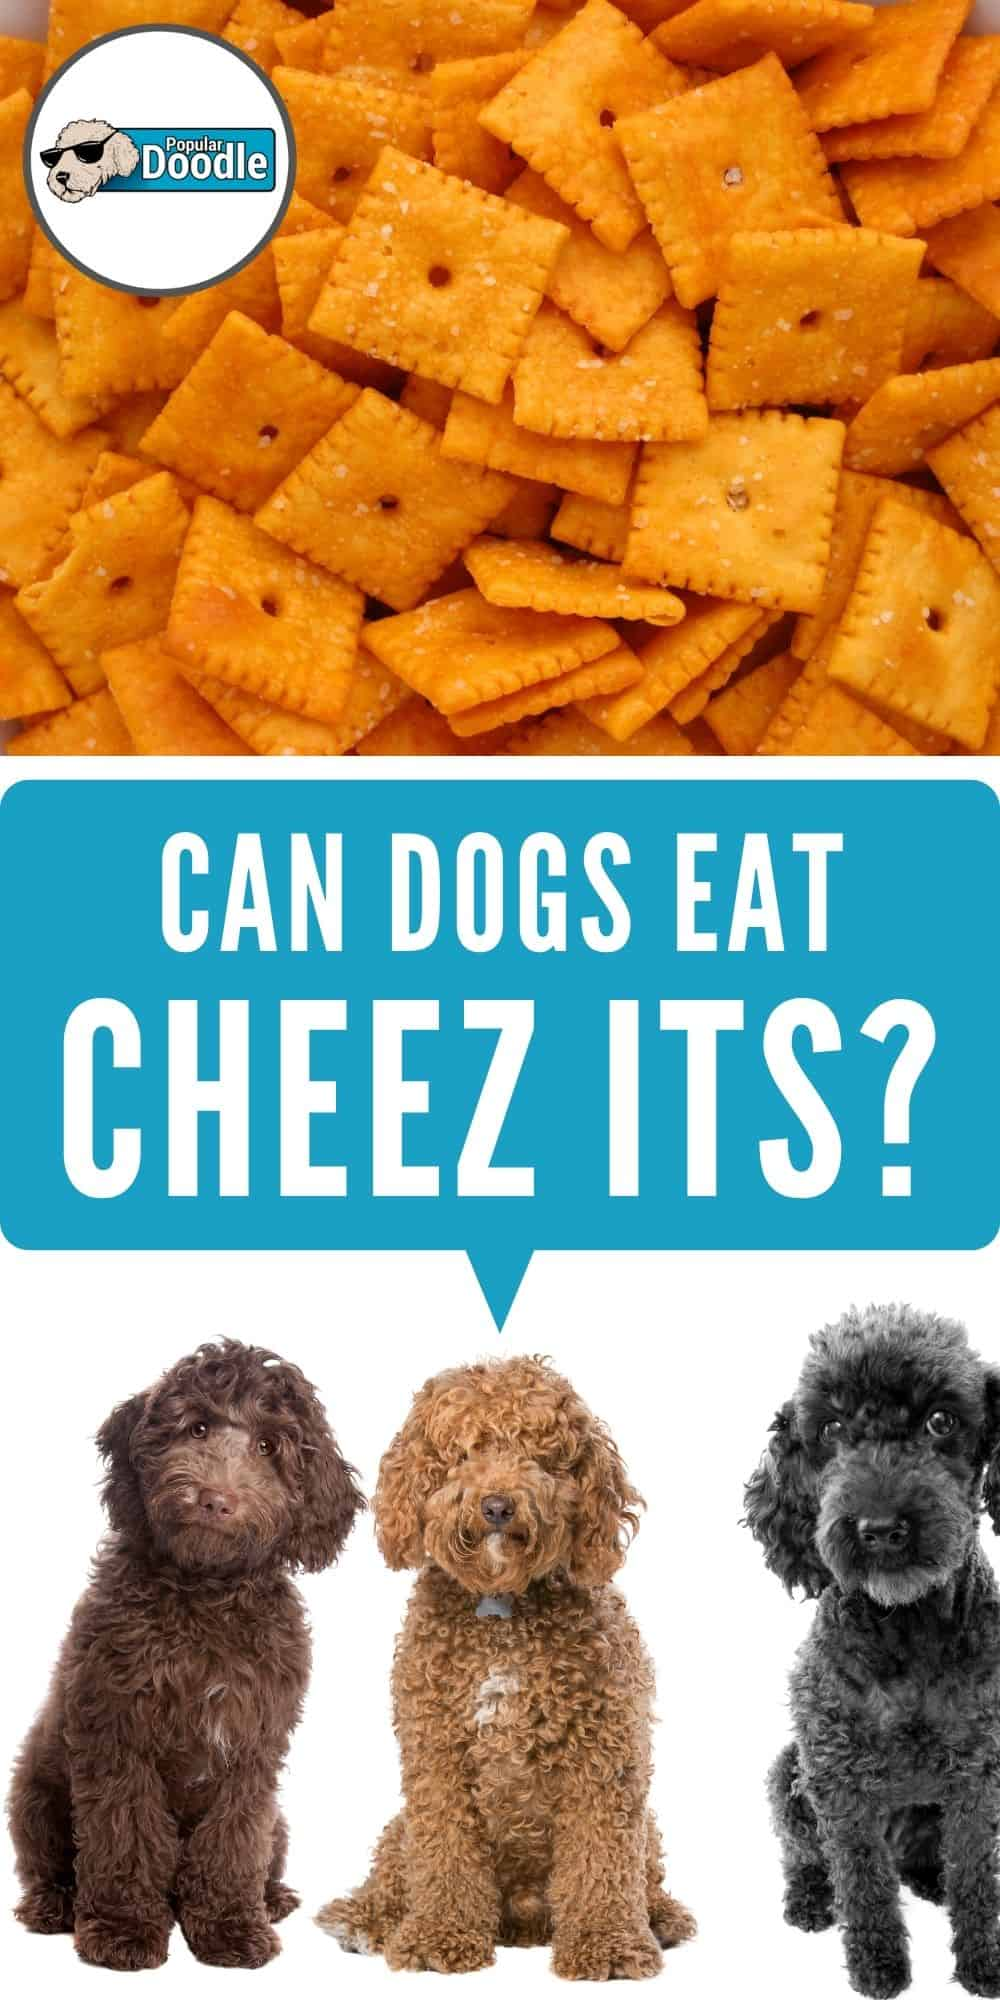 Can Dogs Eat Cheez Its? | Are Cheez Its Bad for Dogs?